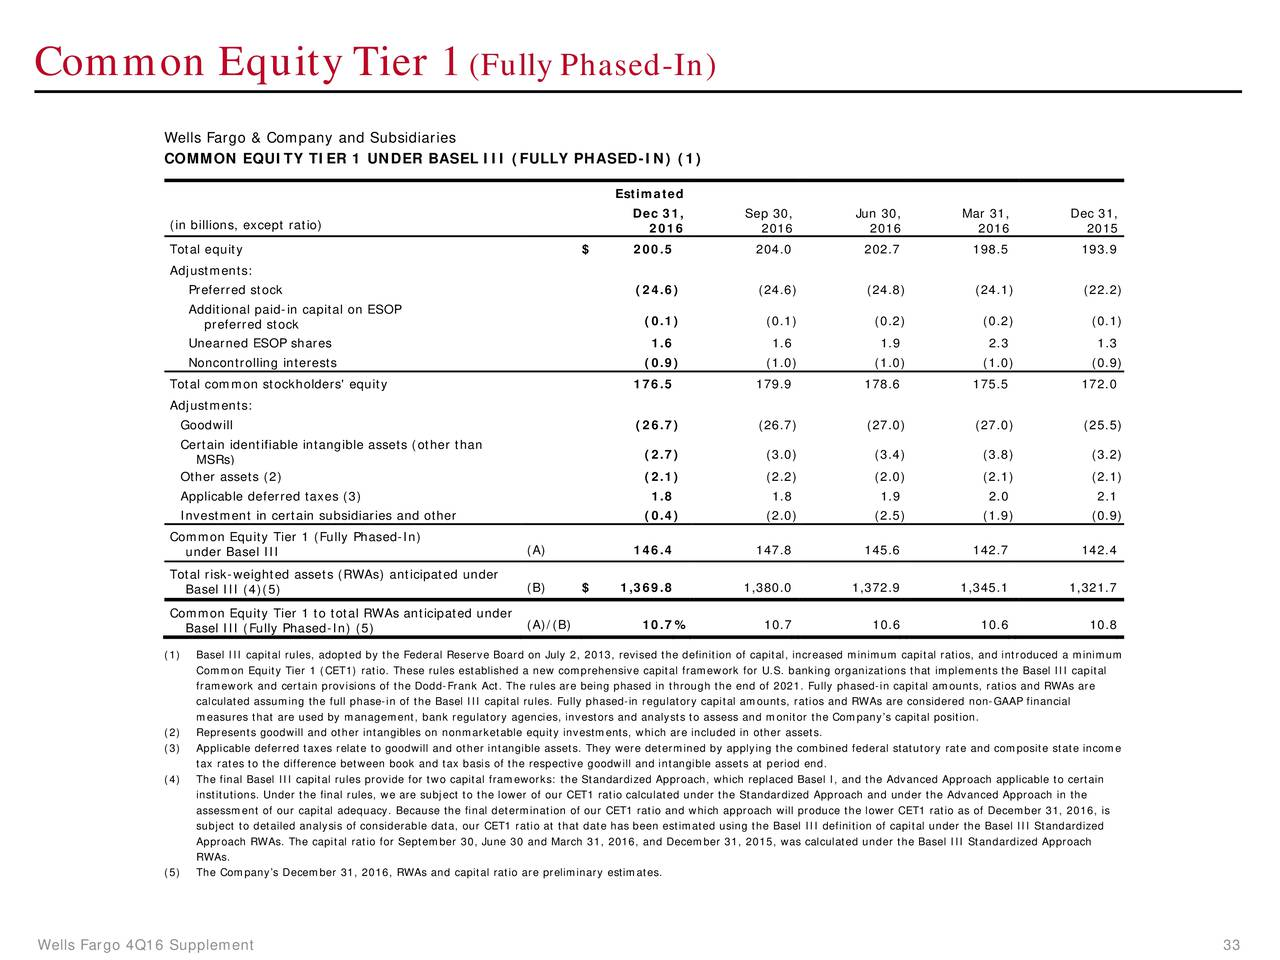 wells fargo financial analysis Updated key statistics for wells fargo & co - including wfc margins, p/e ratio, valuation, profitability, company description, and other stock analysis data.